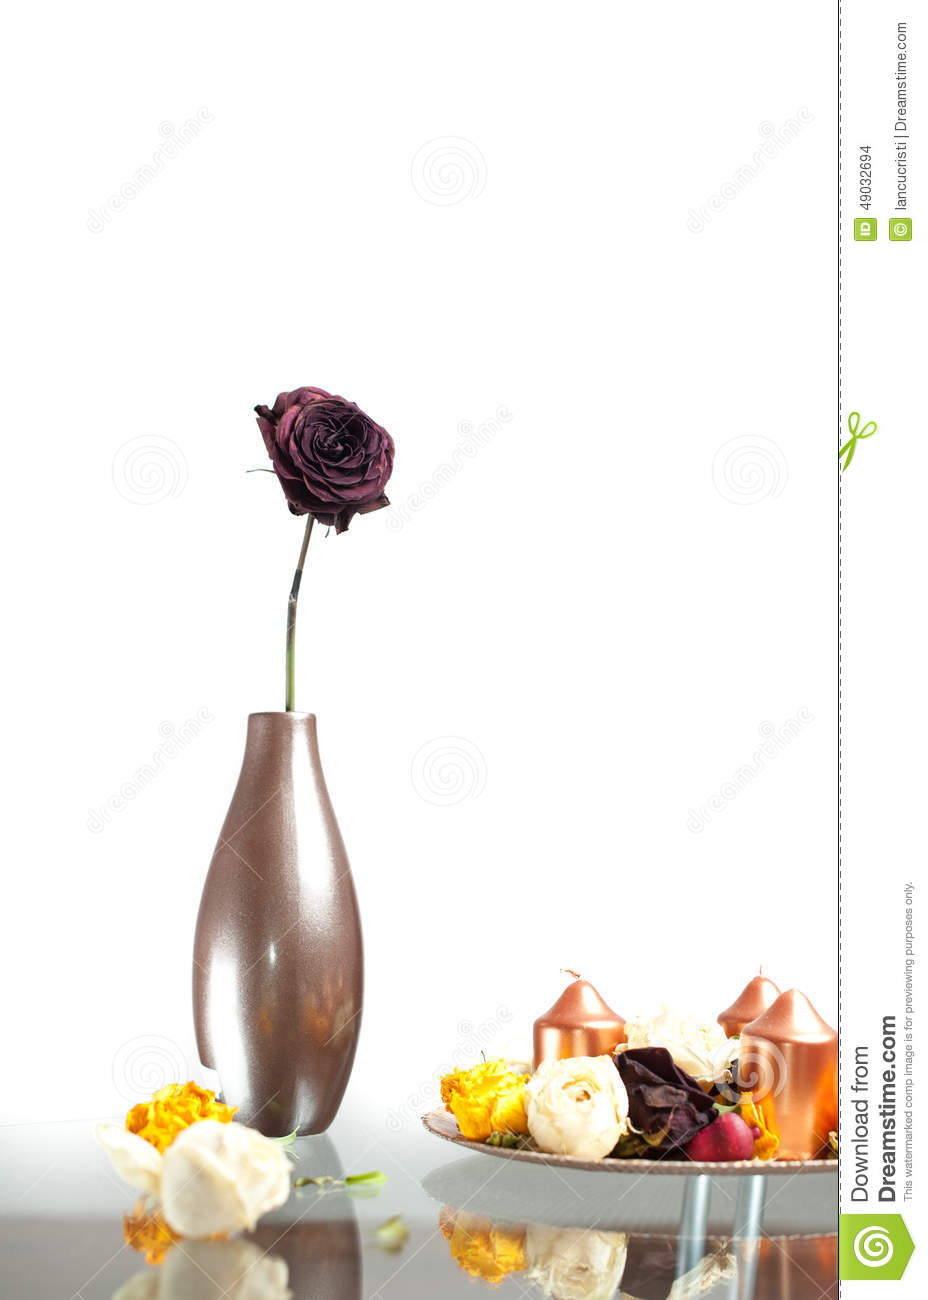 Metallic Vase With One Rose Flower On The Table Over White